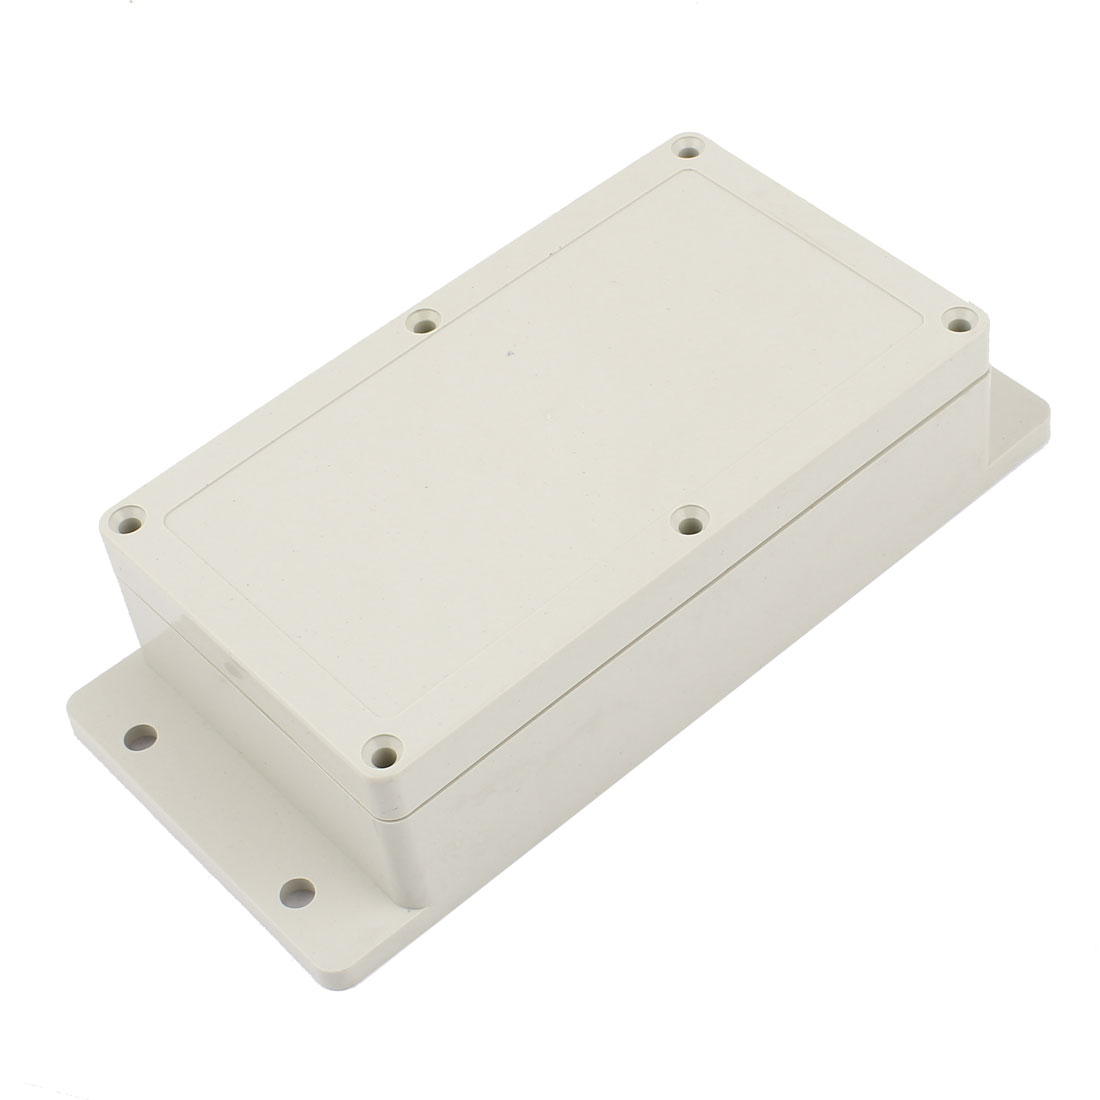 158mm x 90mm x 46mm Waterproof Plastic Sealed DIY Joint Electrical Junction Box